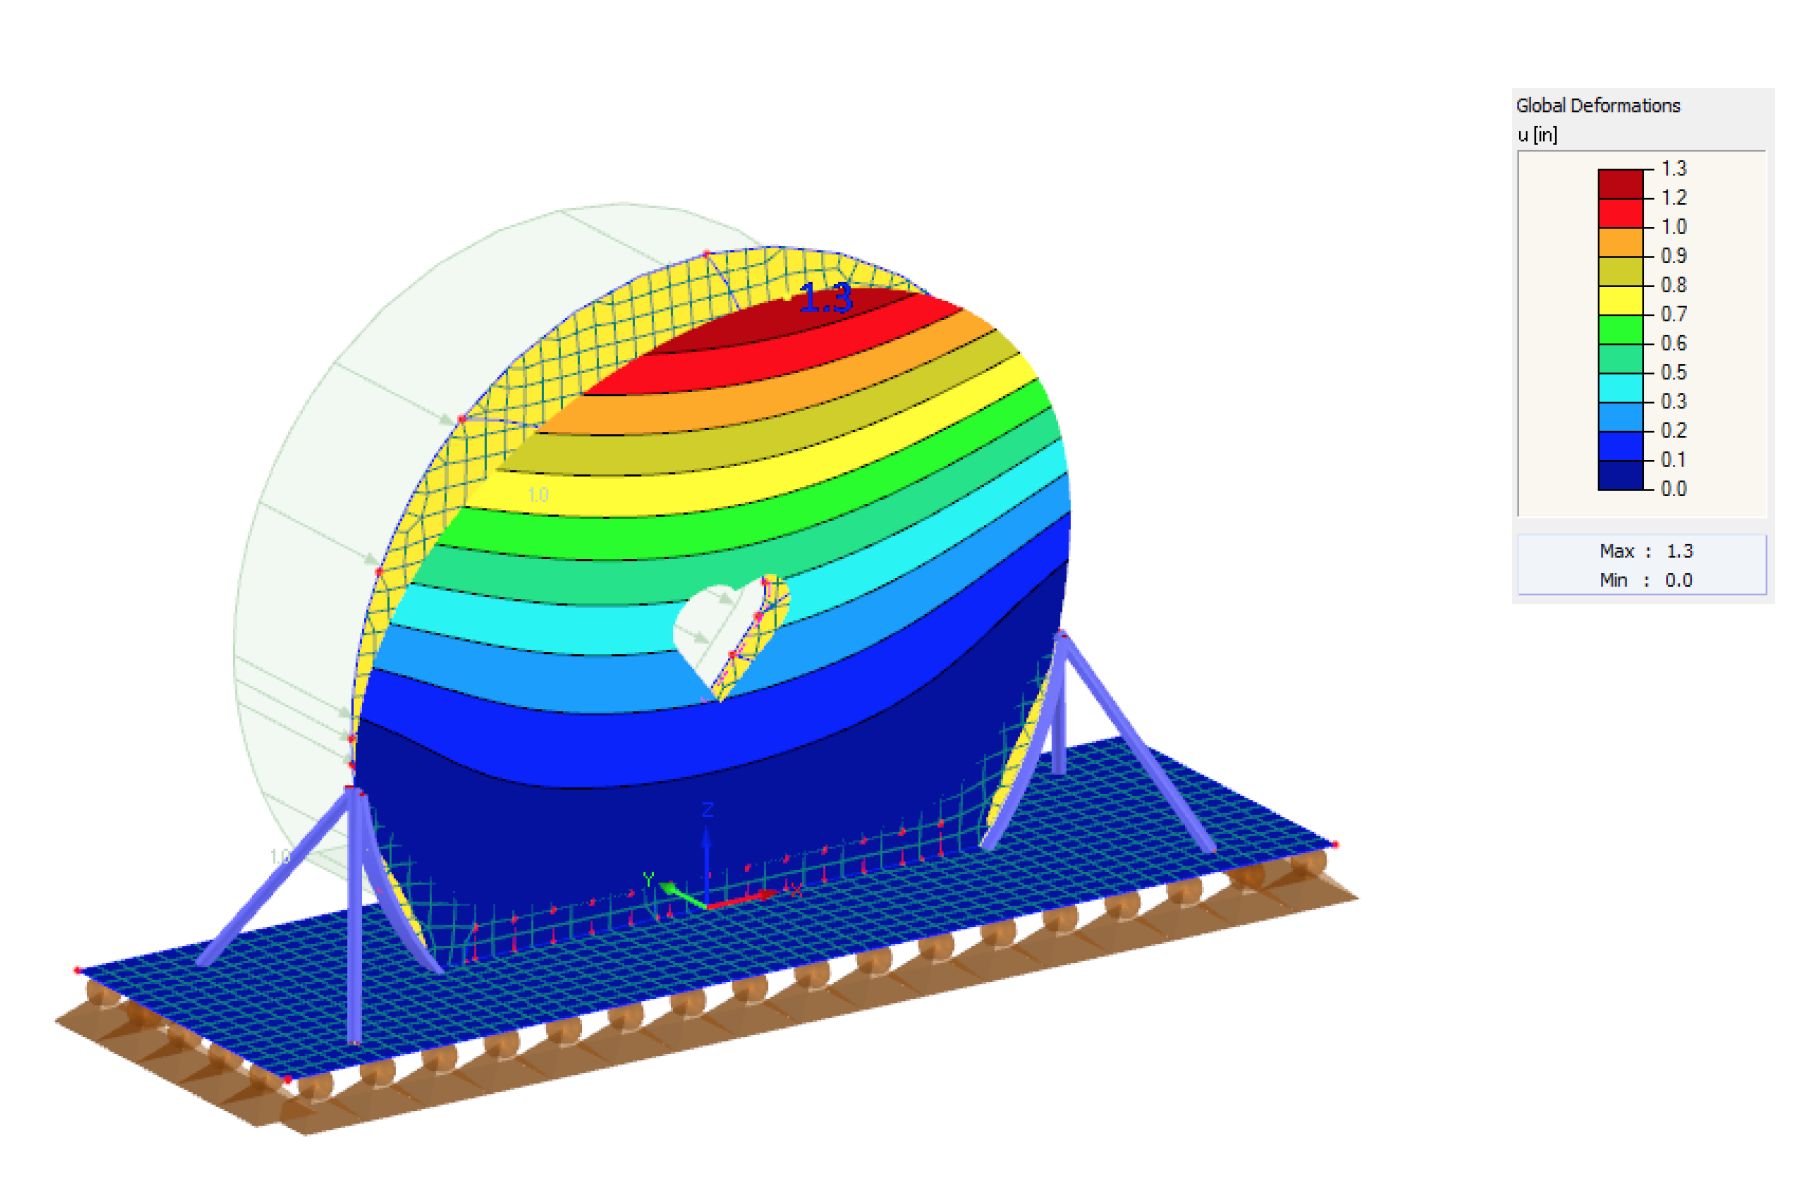 A wind load deflection analysis helped us confirm that the structure could withstand the maximum deflection (wind load) in Times Square and determine which tiles were likely to pop off and cause issues.